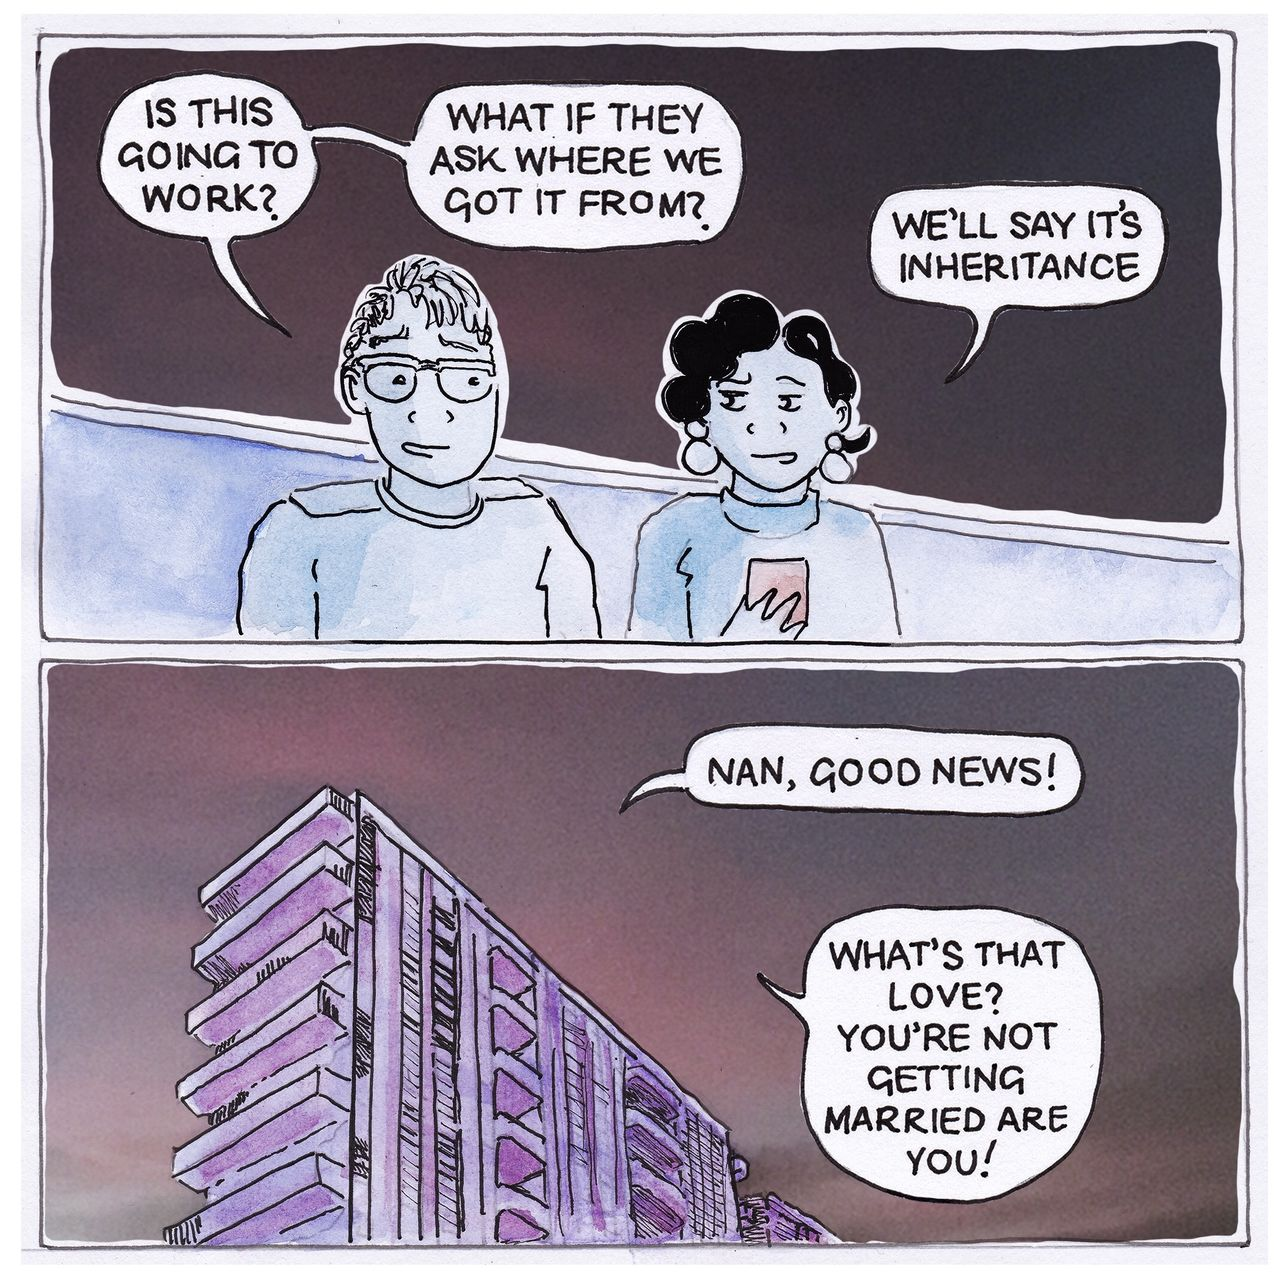 """Joan and Louis are on their way back to Joan's Nan to tell her the good news. They wonder if it will work, but decide that they'll say it's an inheritance. The webcomic ends with Joan saying she has some good news. Nan replies """"oh you're not getting married are you!?"""""""